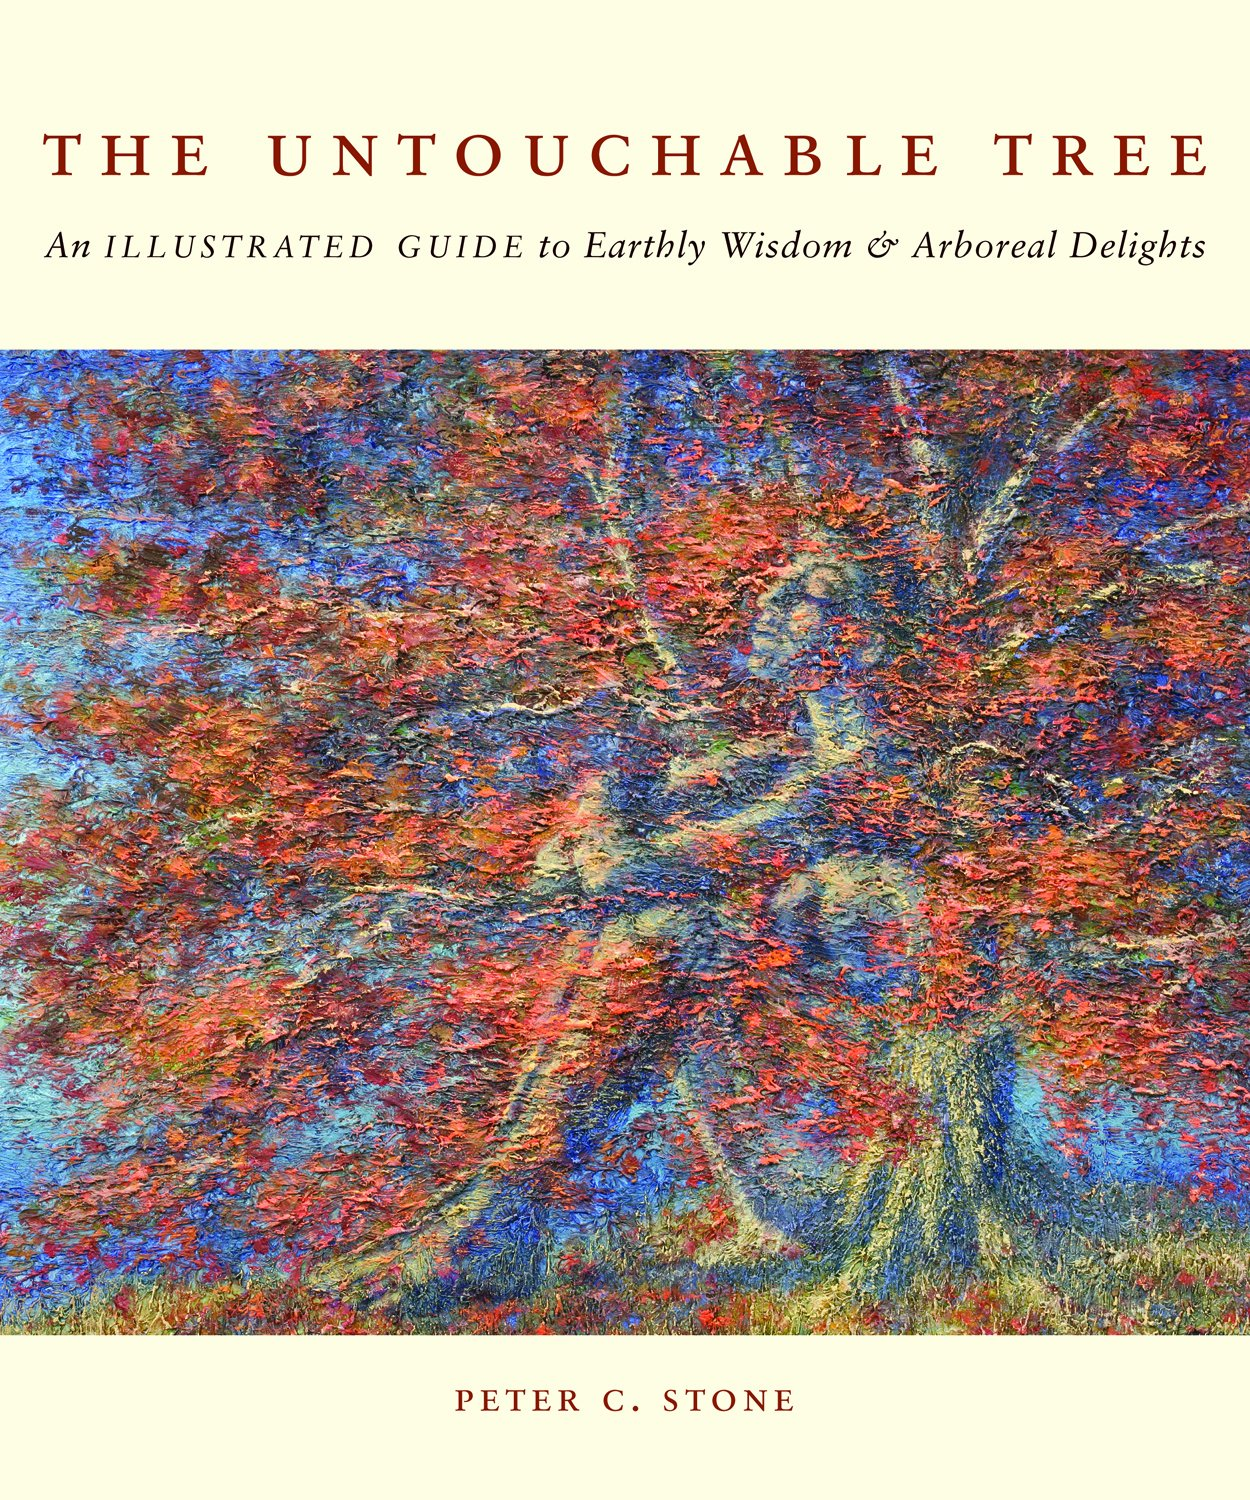 The Untouchable Tree, An Illustrated Guide to Earthly Wisdom & Arboreal Delights